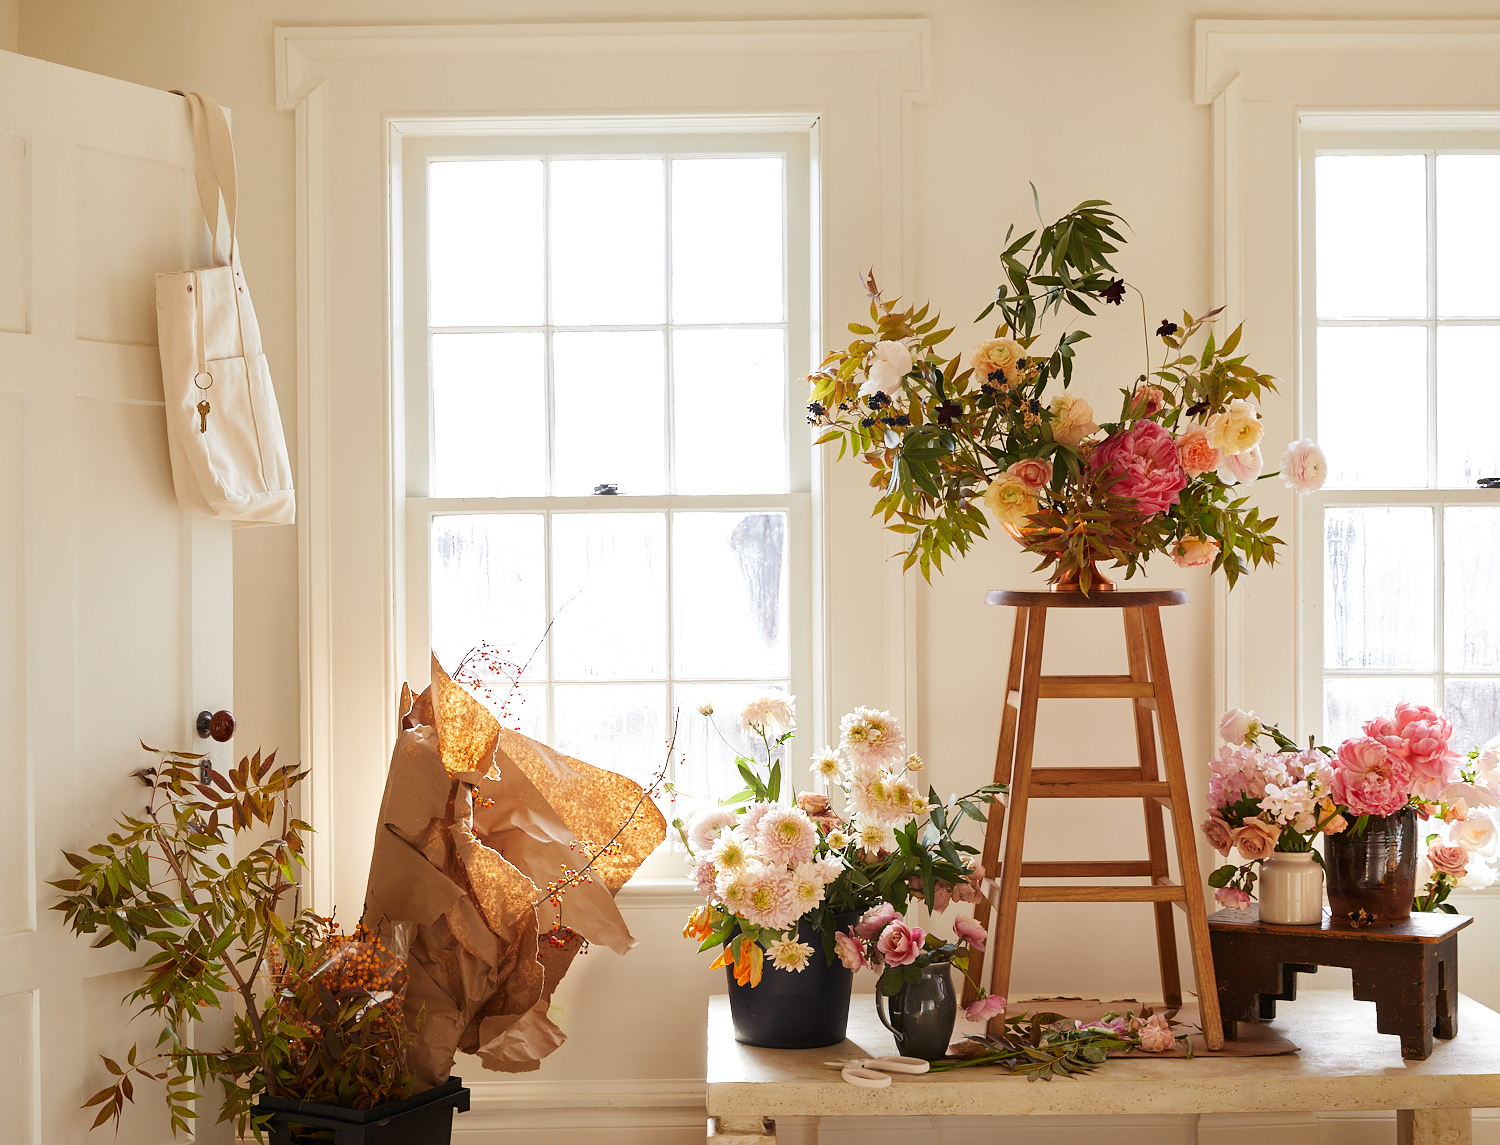 This Gorgeous Line Of Gardening Tools And Home Decor Is Just Dreamy Martha Stewart